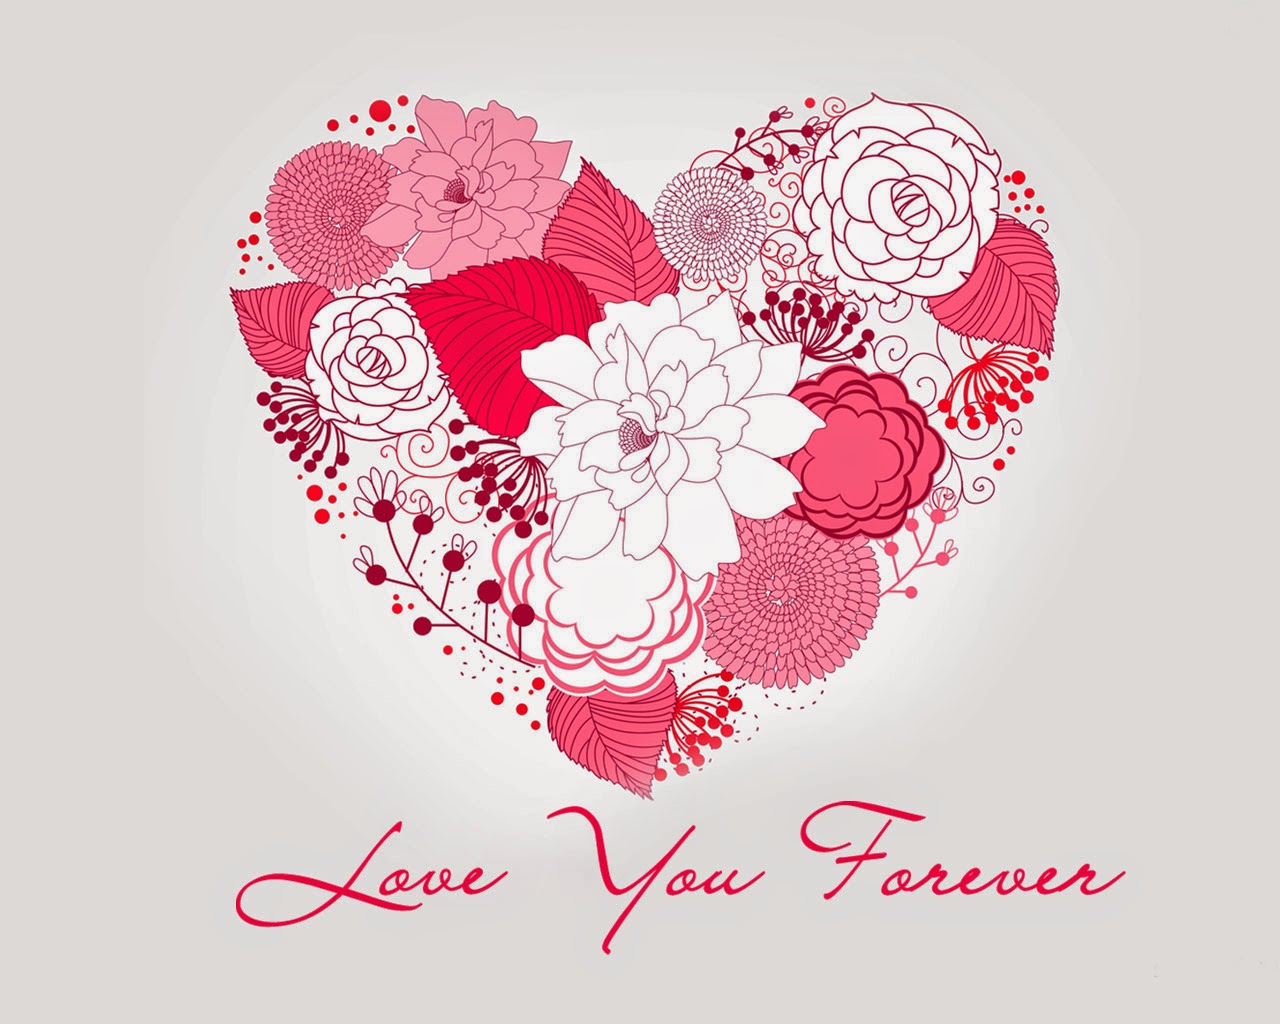 lOVE Wallpapers -I- | Wallpaper Picture Photo